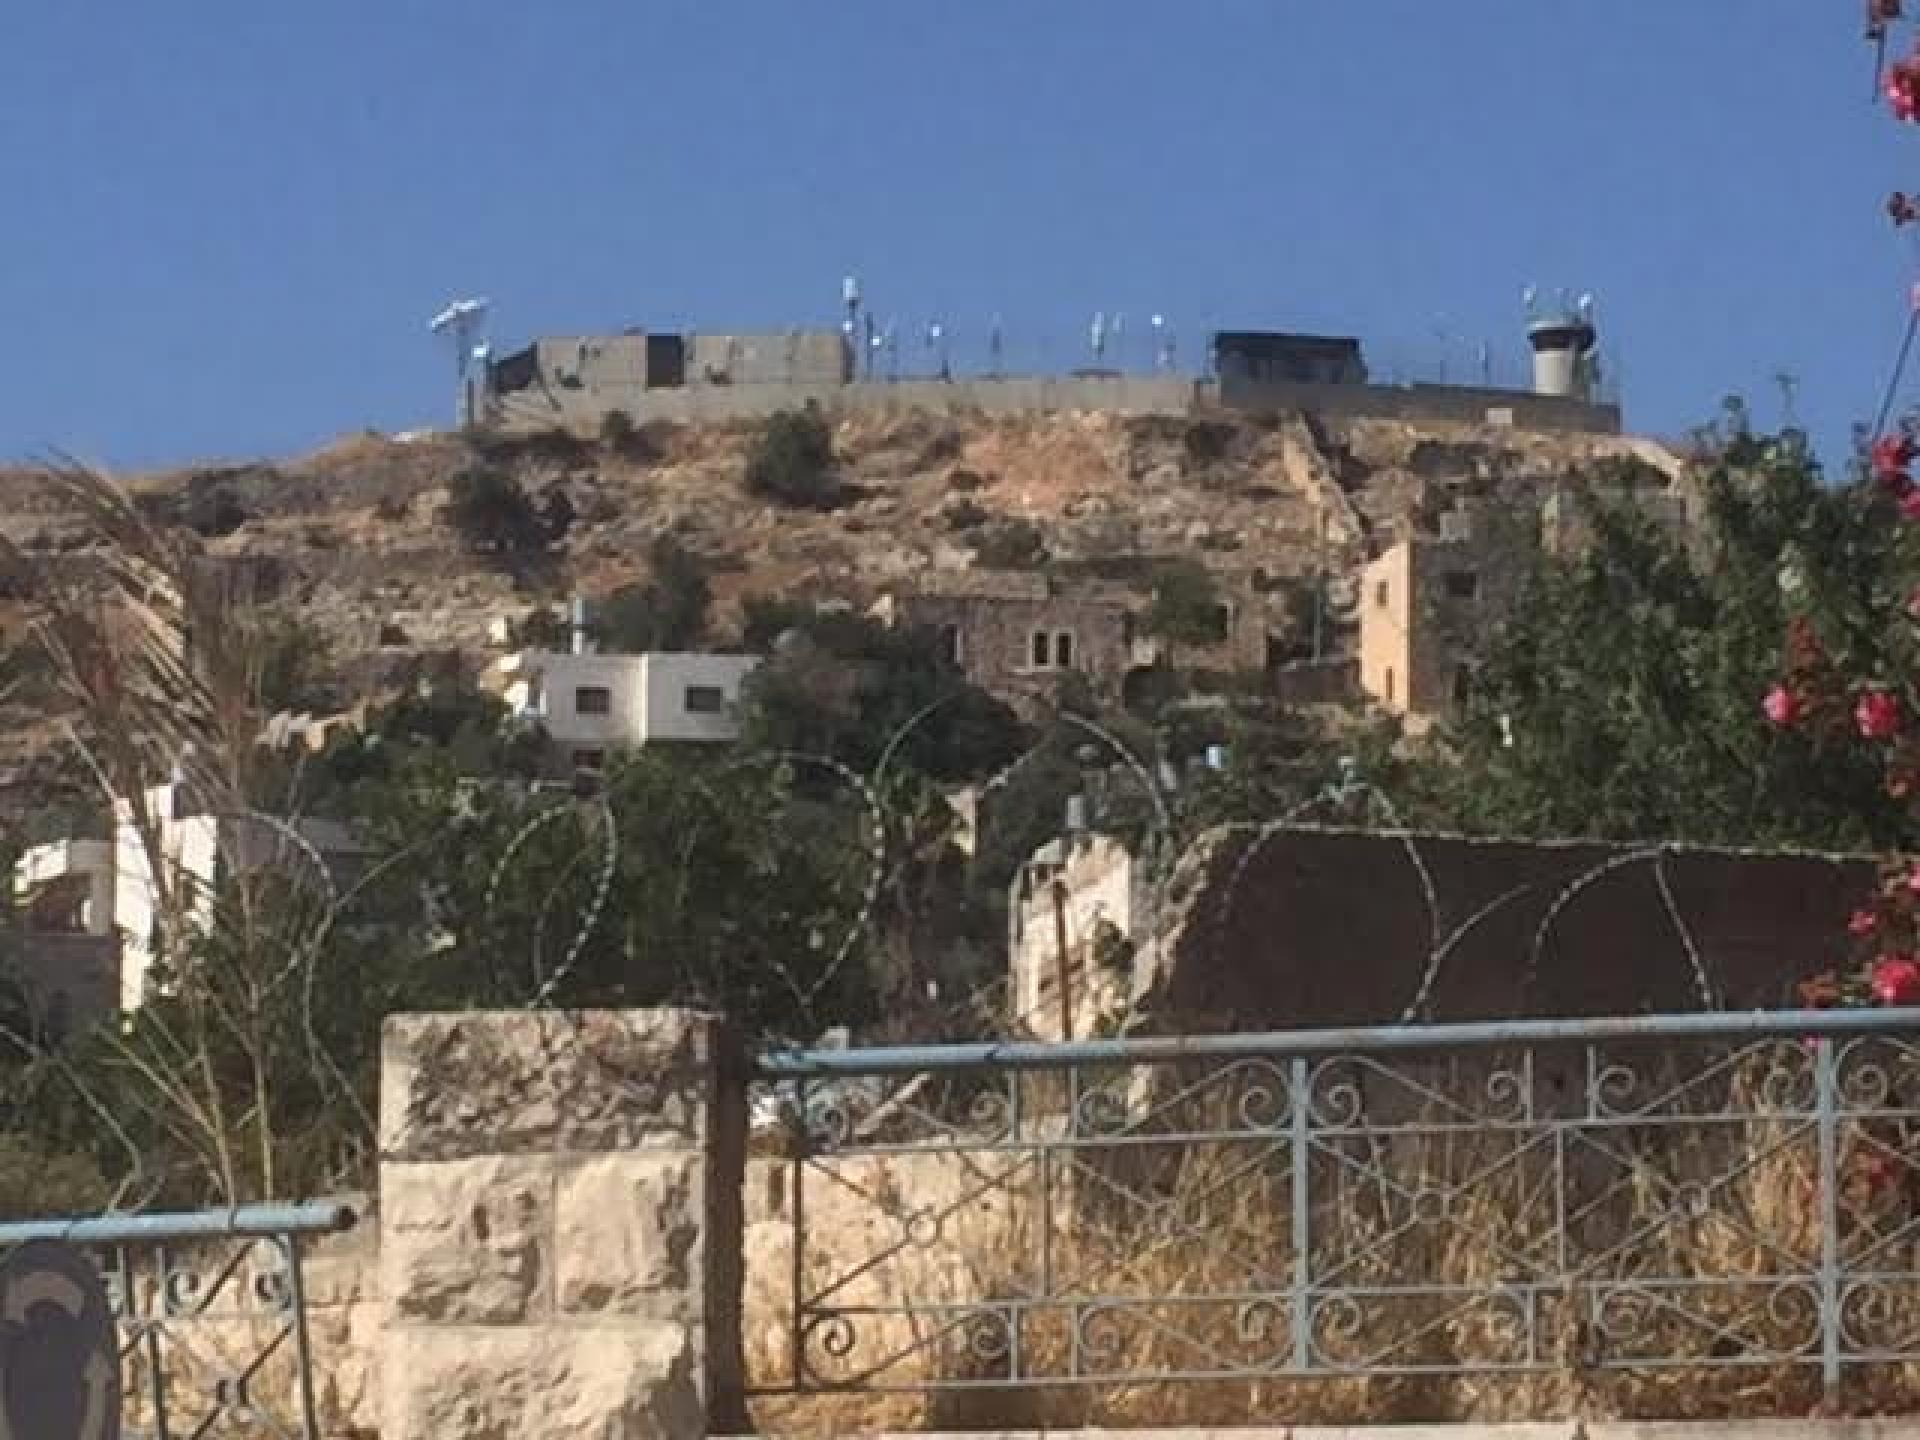 The pillbox and the camp on the hill of Abu Snan neighborhood